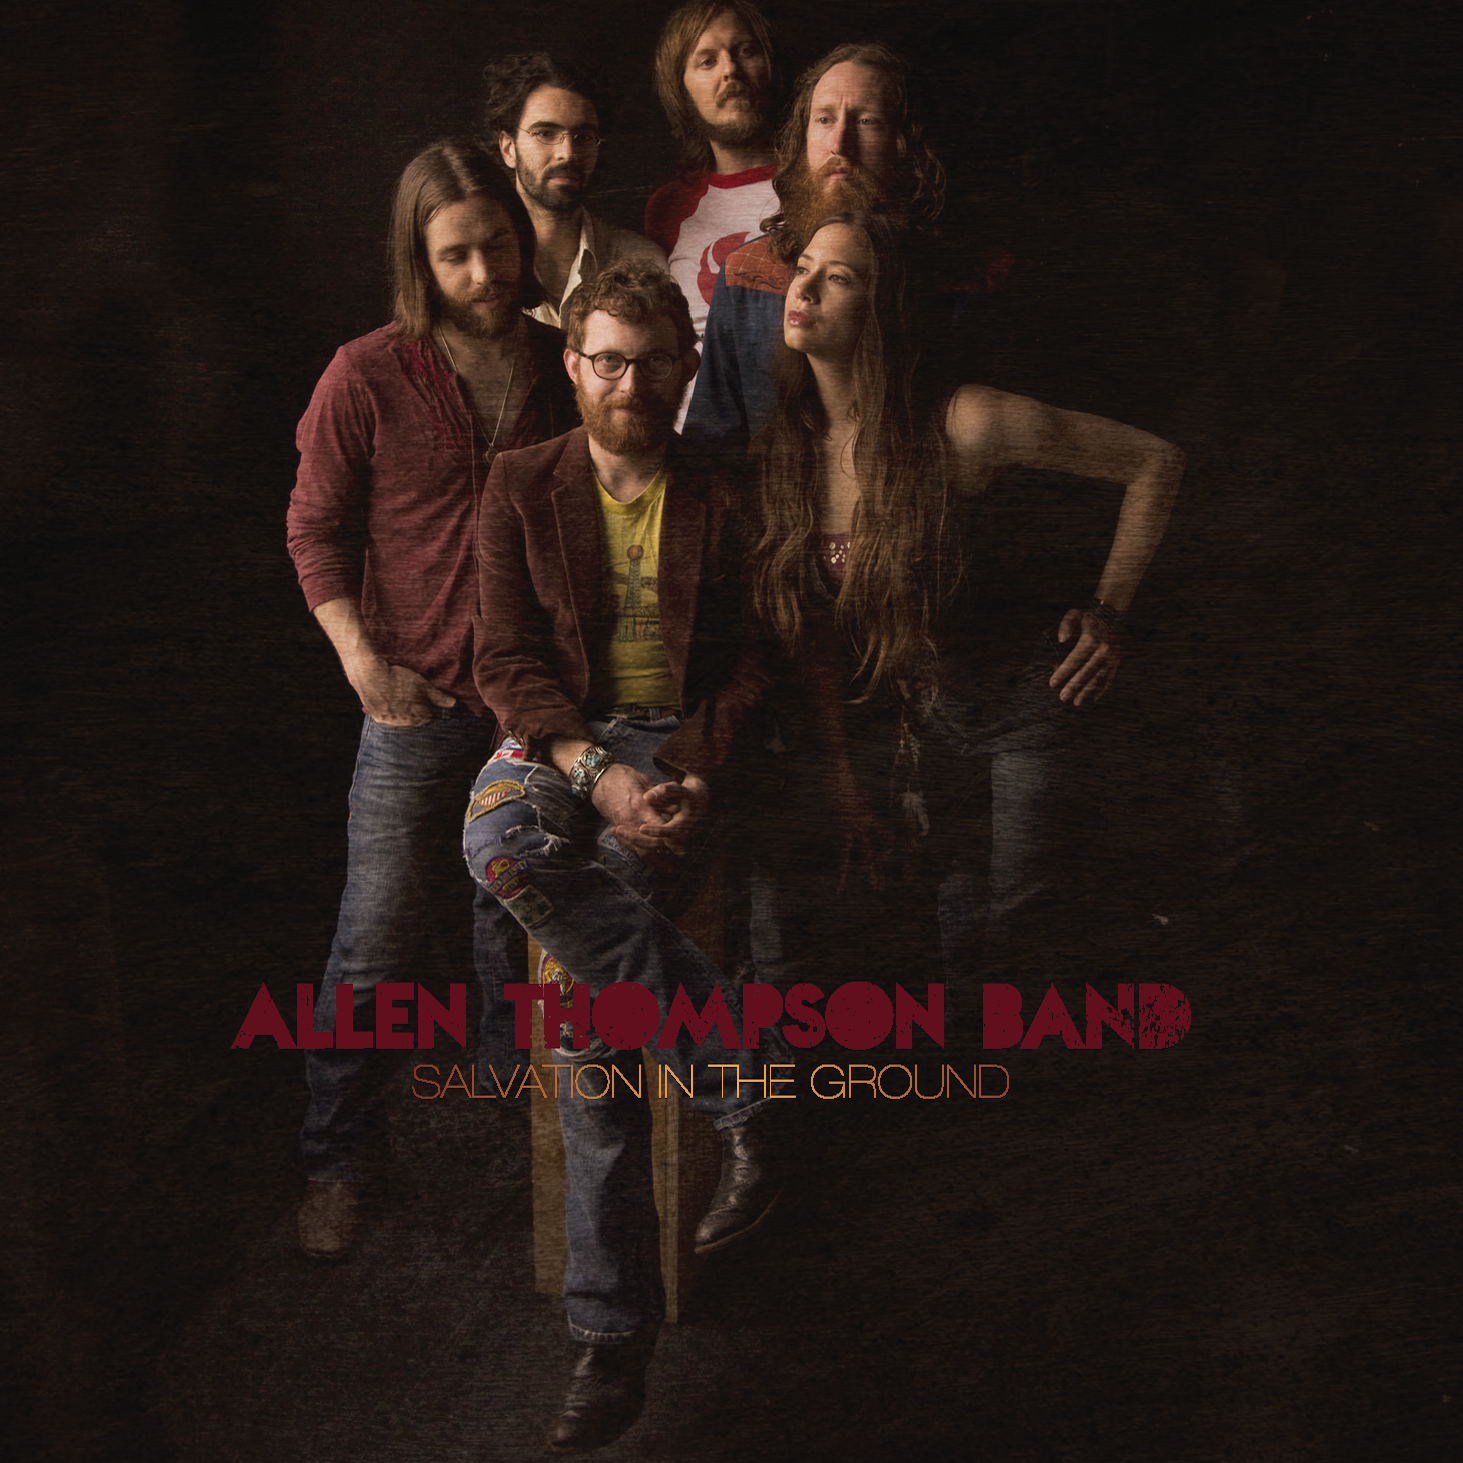 Allen Thompson Band - Salvation In The Ground CD 00006